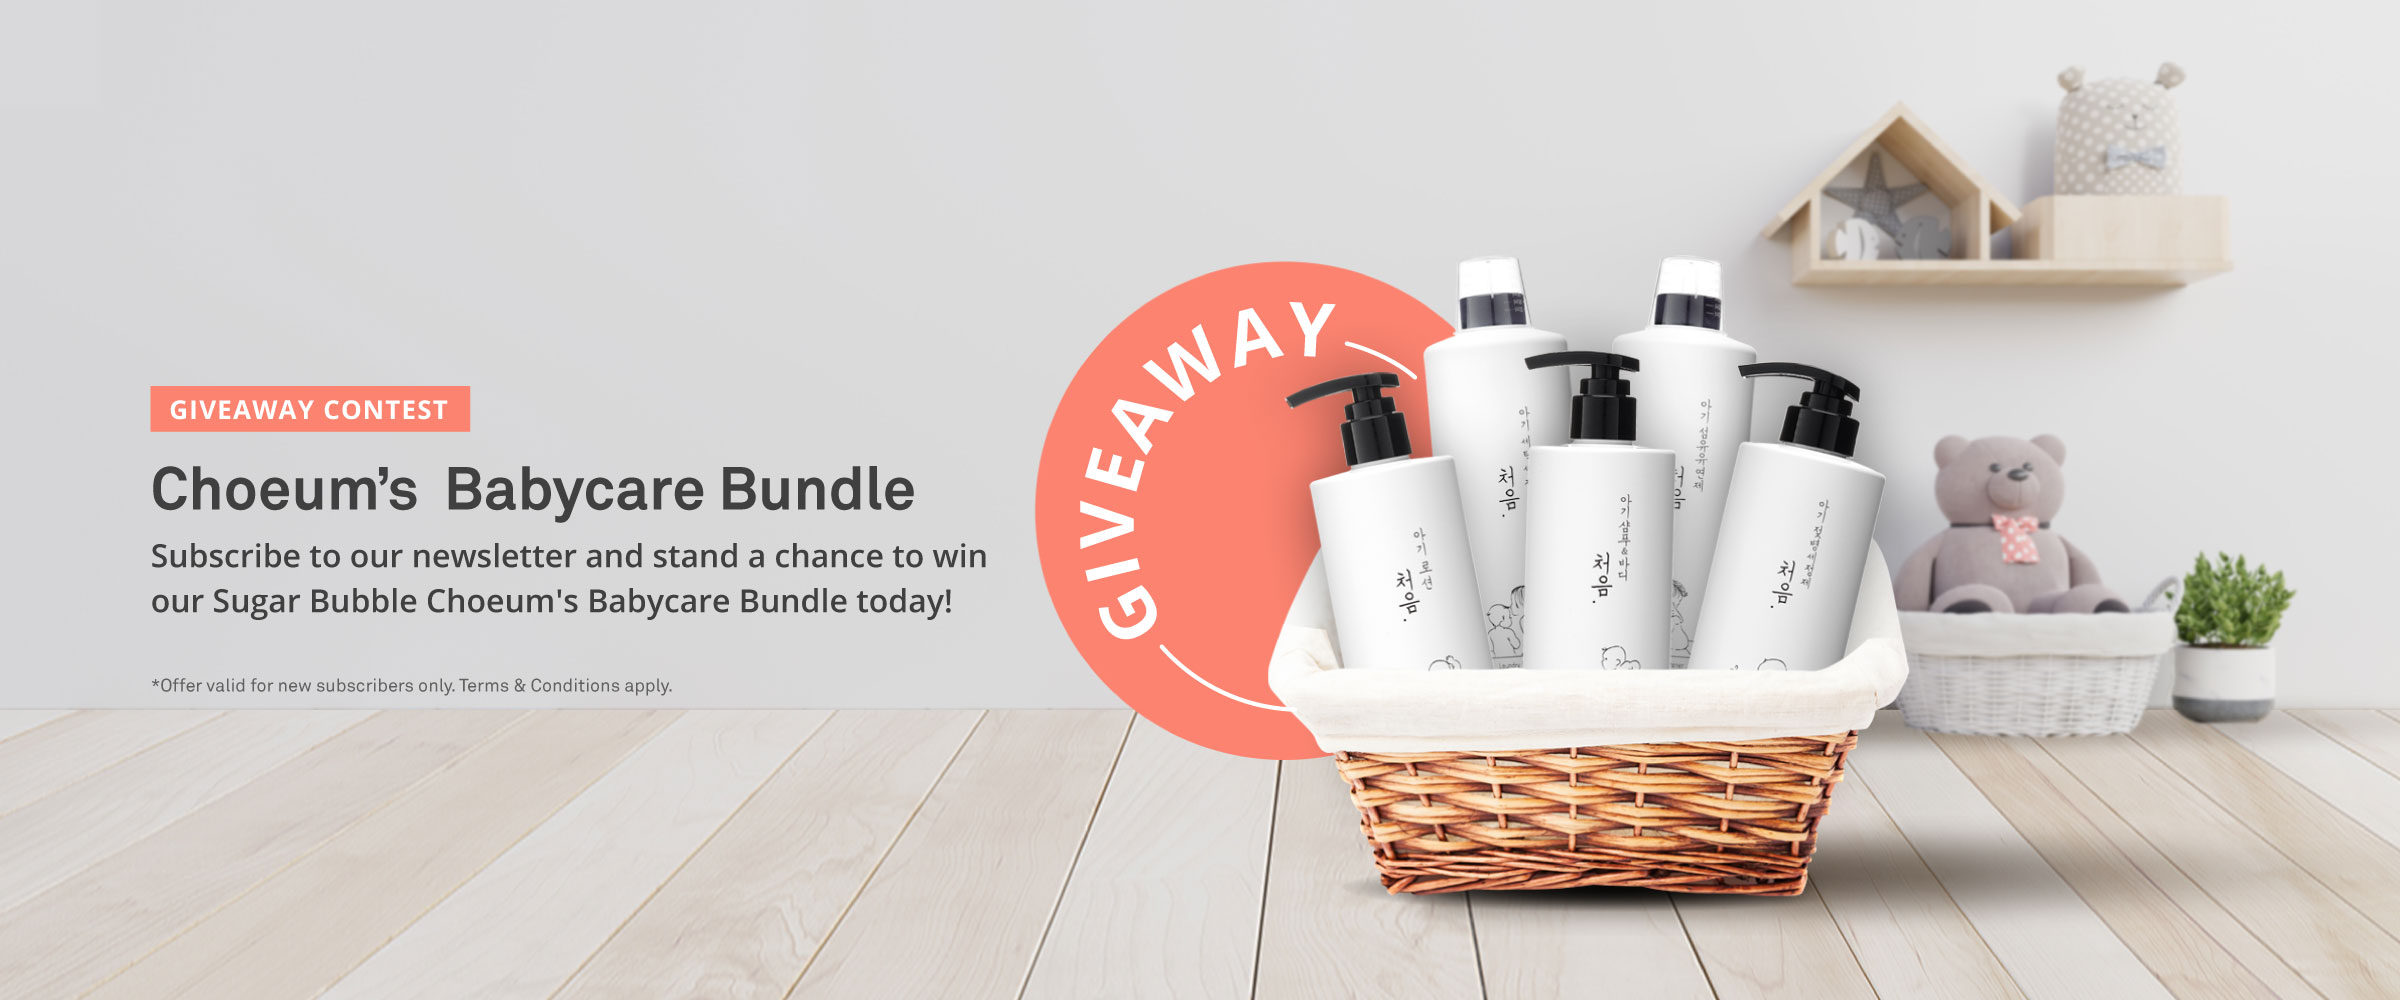 Giveaway contest - Choeum's  Babycare Bundle